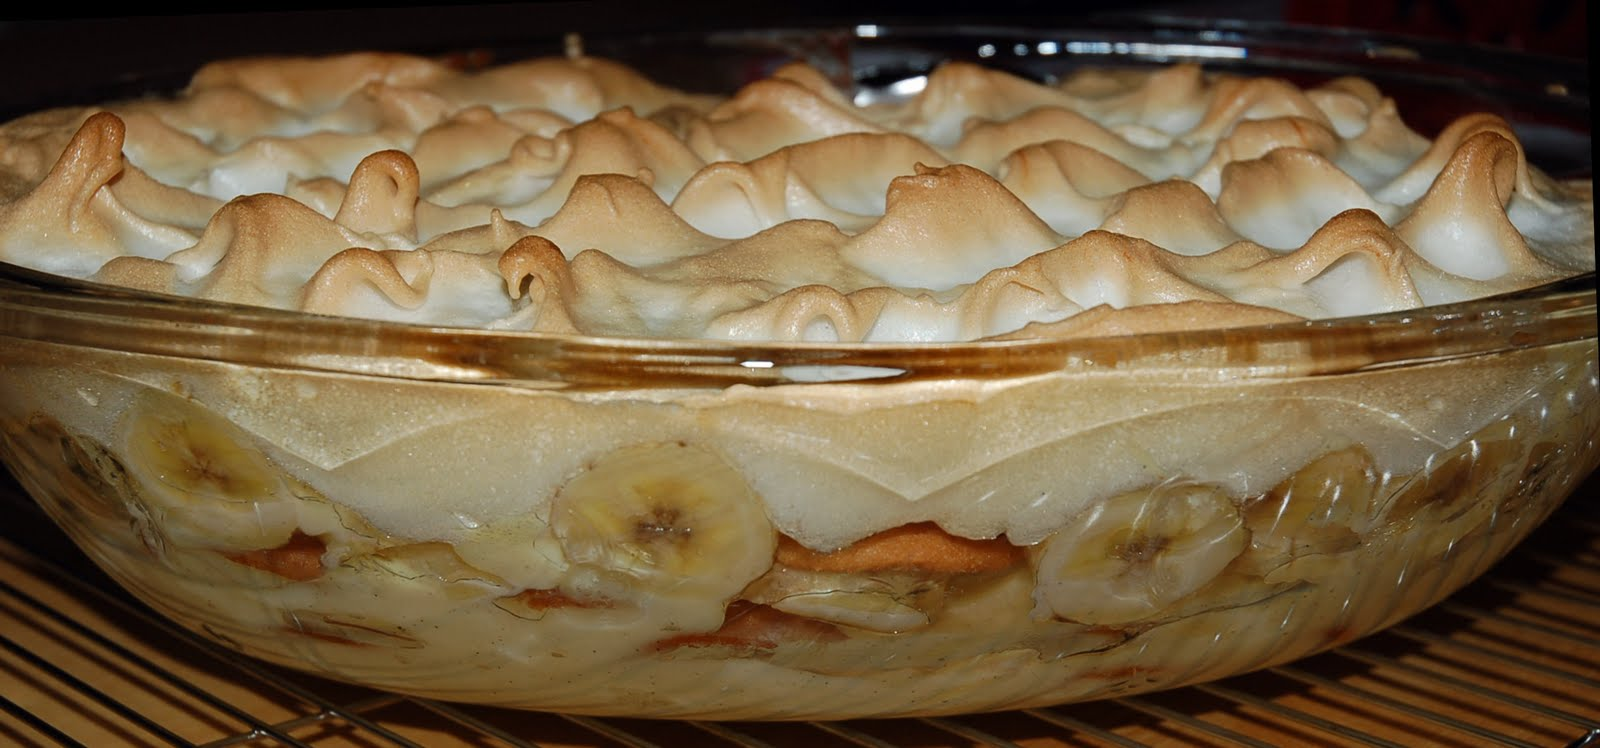 classic banana pudding with a meringue topping, recipes below